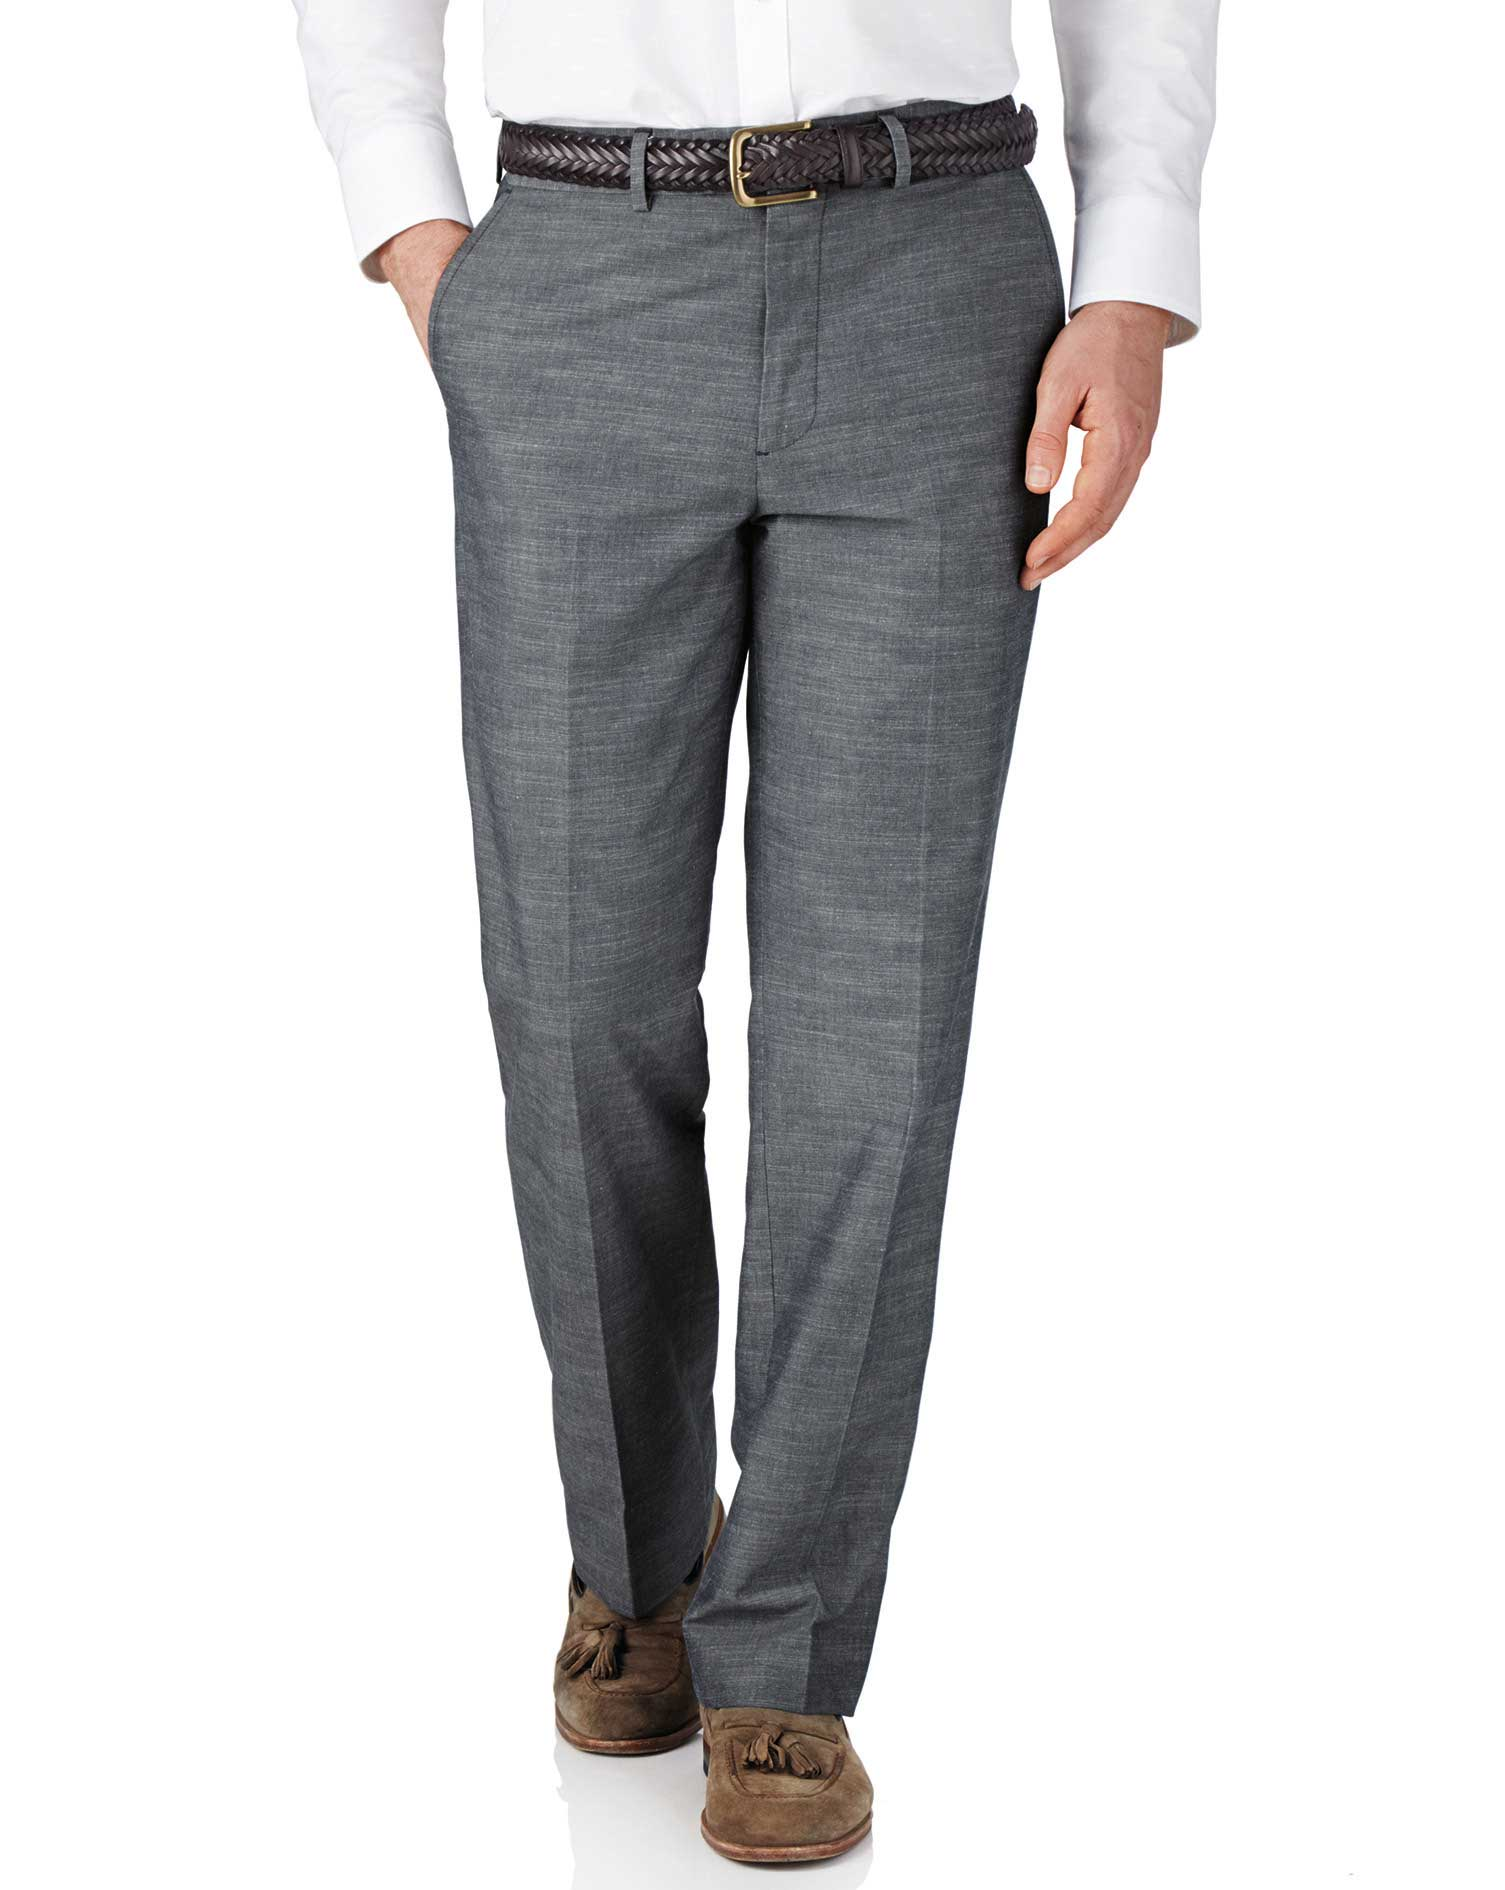 Blue Chambray Classic Fit Trousers Size W34 L30 by Charles Tyrwhitt